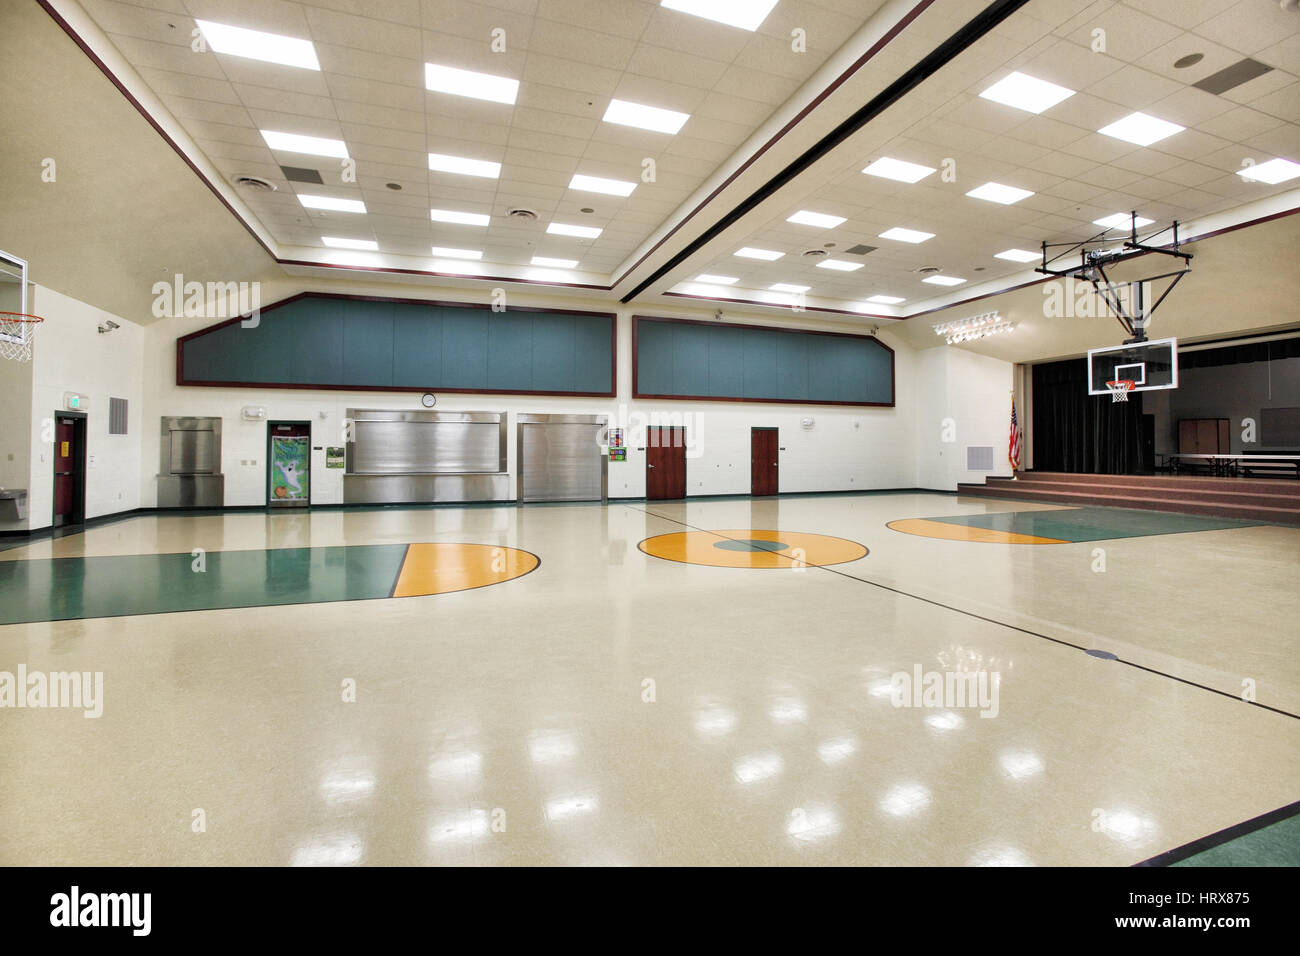 The multipurpose room in a modern elementary school which